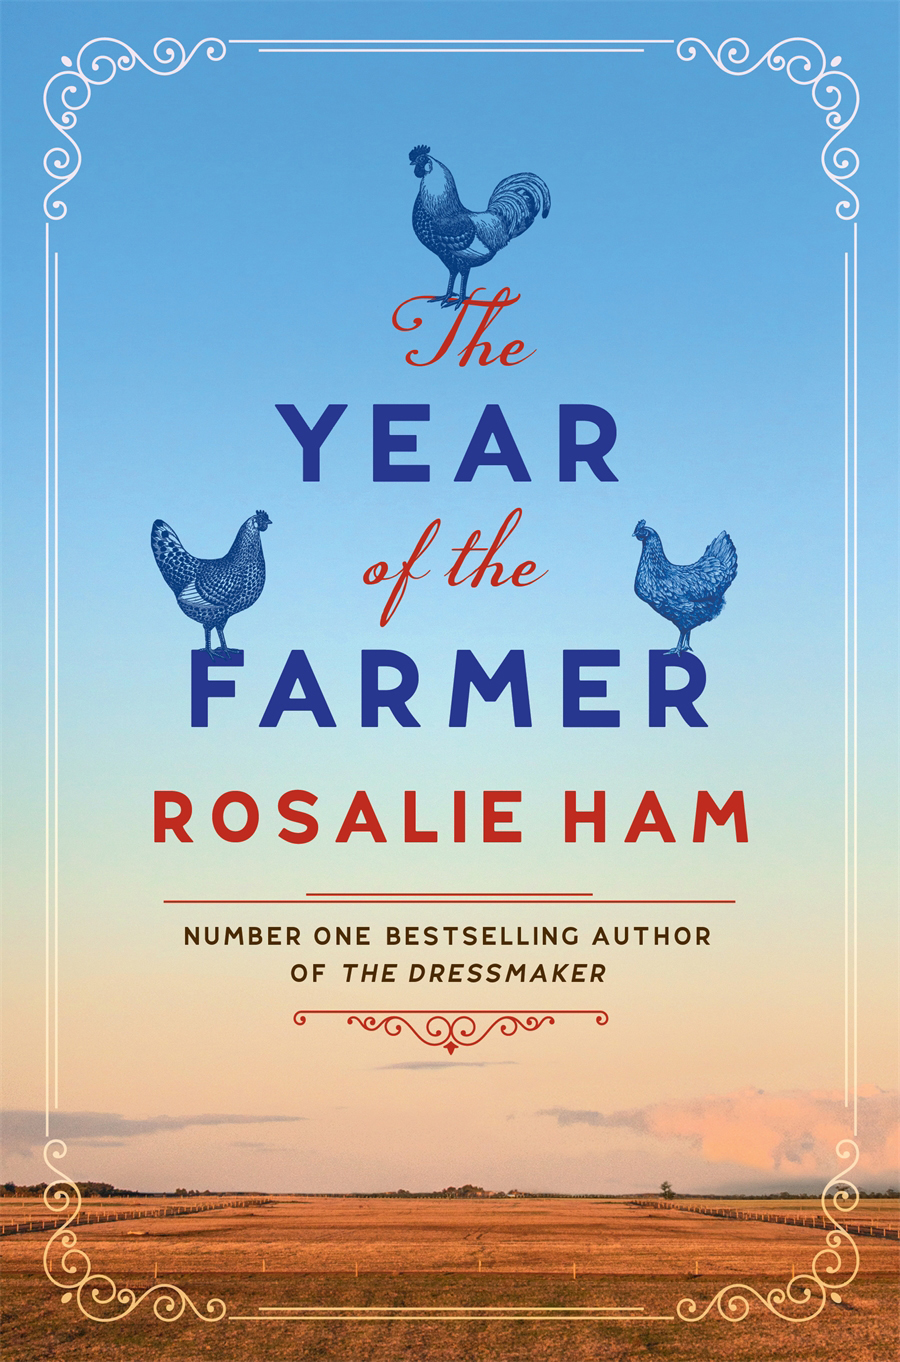 Cover image of 'The Year of the Farmer' by Rosalie Ham